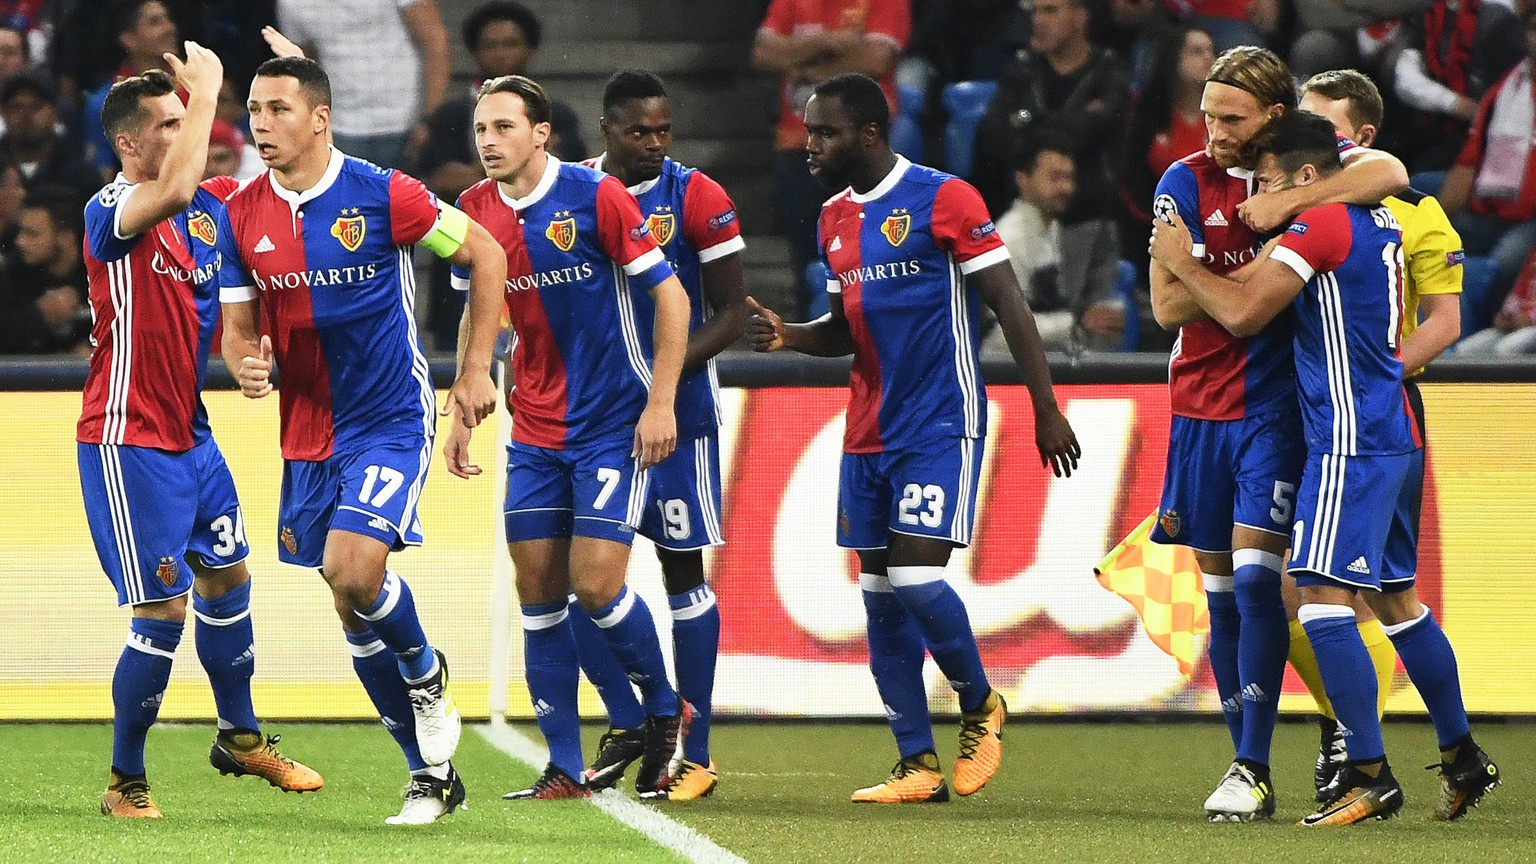 epa06230845 Basel's Michael Lang (2-R) celebrates with his teammates after scoring the 1-0 lead during the UEFA Champions League group A soccer match between FC Basel 1893 and Benfica Lisbon in the St. Jakob-Park stadium in Basel, Switzerland, 27 September 2017.  EPA/GEORGIOS KEFALAS